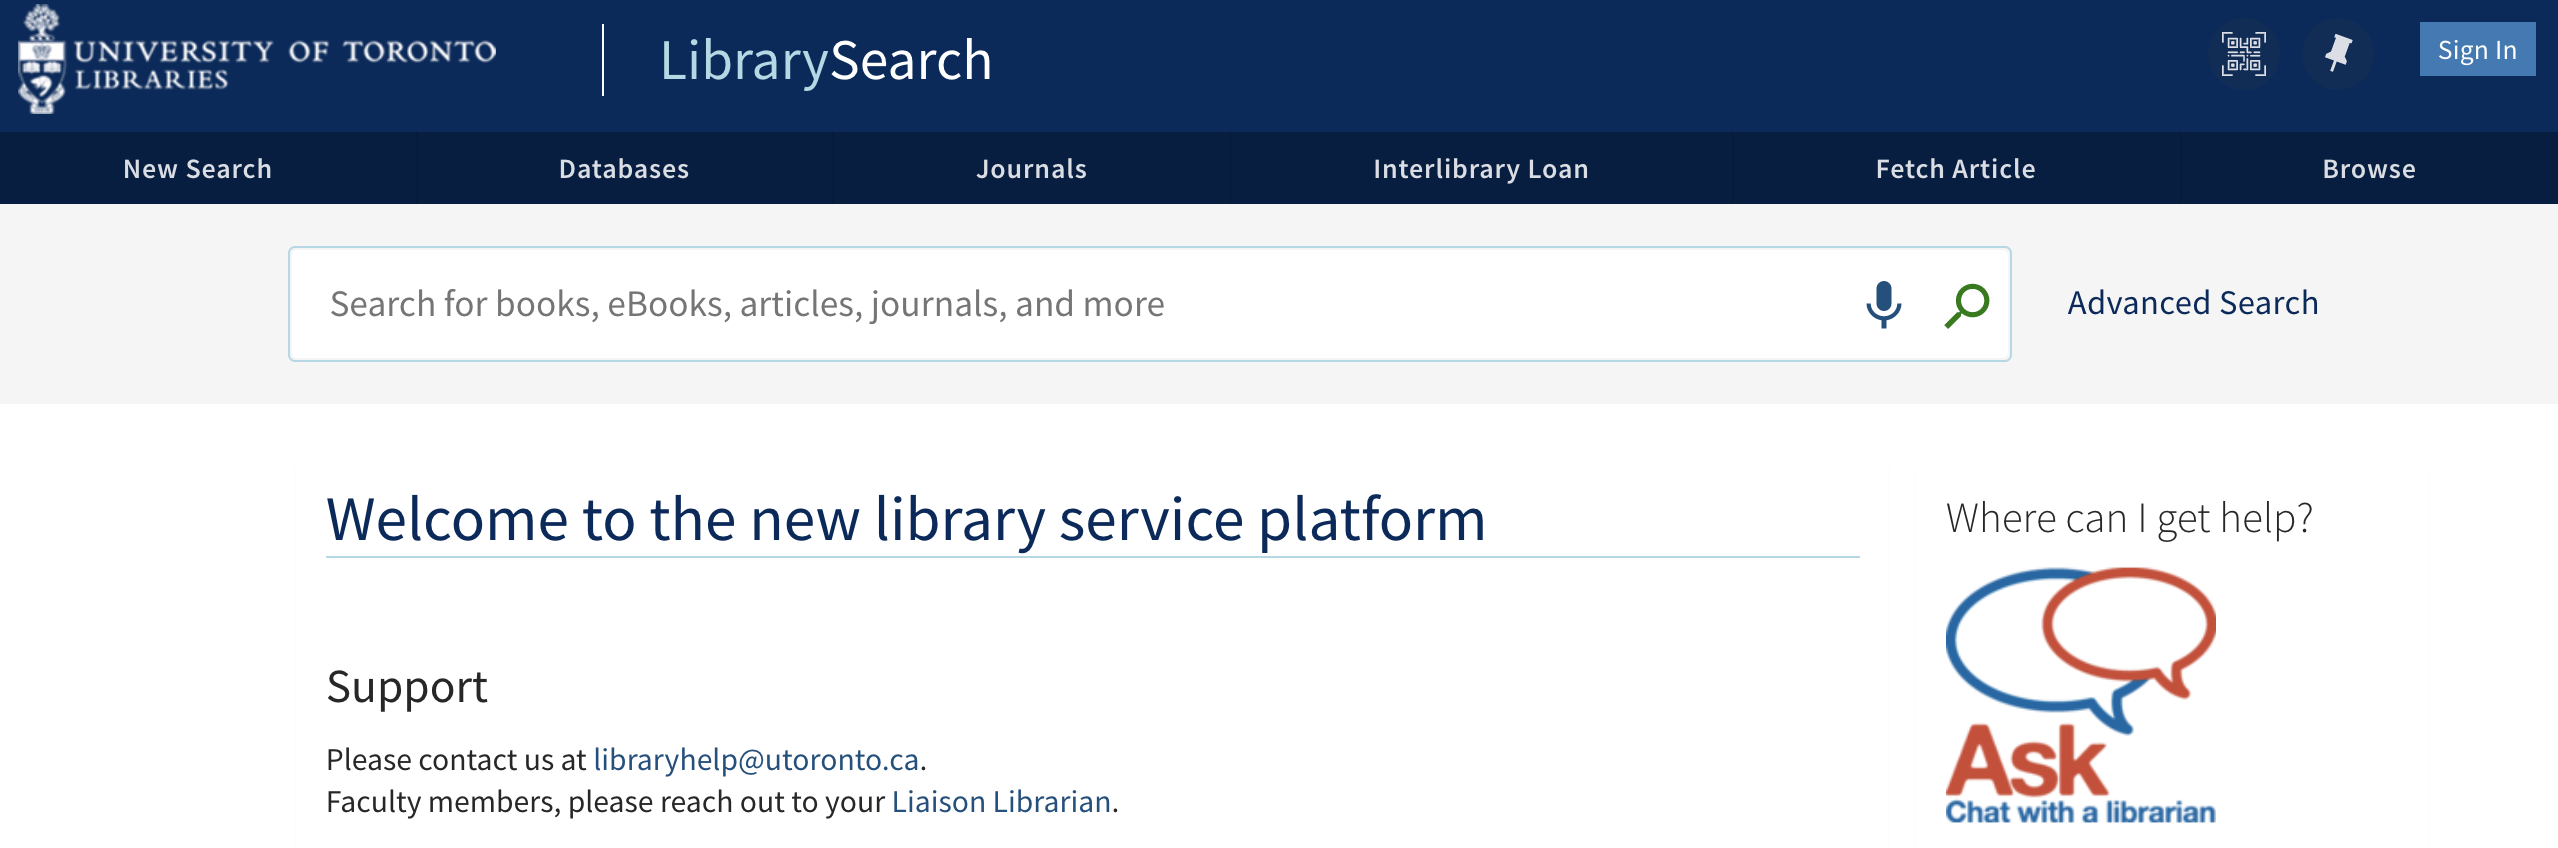 LibrarySearch basic interface.